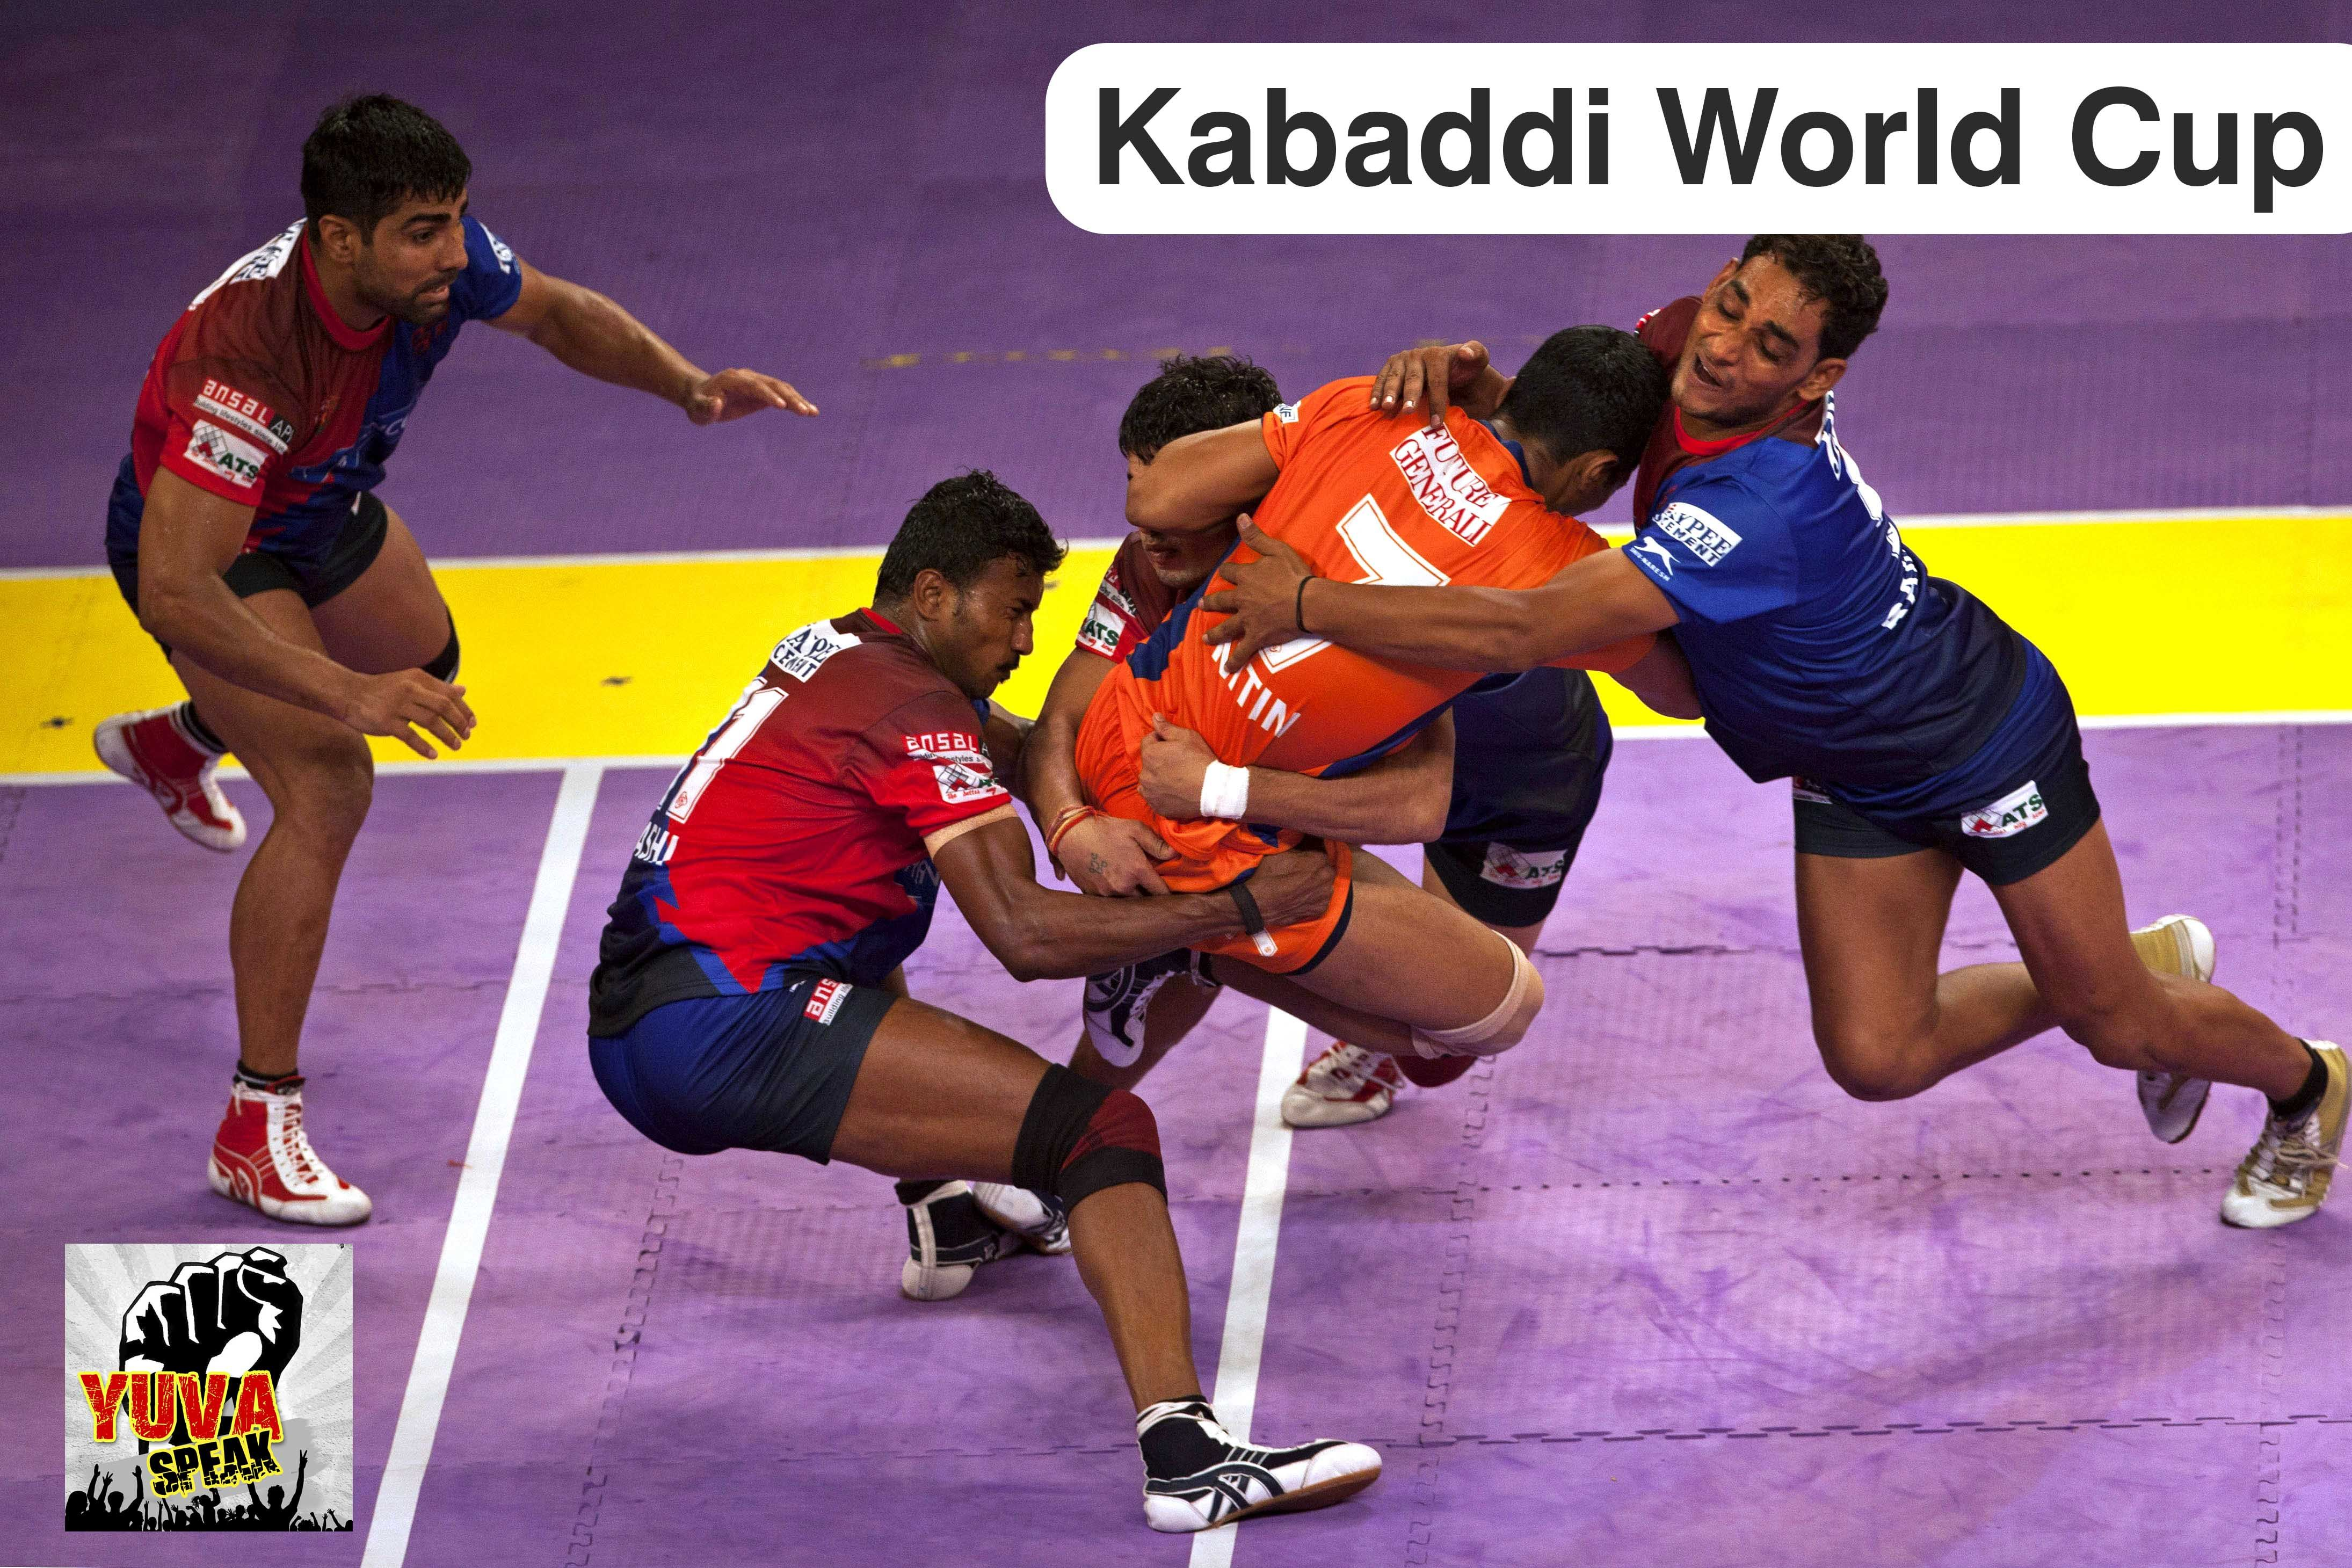 Get Latest Updates Of These Kabaddi World Cup 2016 With Yuvaspeak Yuvaspeak Is One Of The Best Informational B Kabaddi World Cup World Cup News Olympic Sports